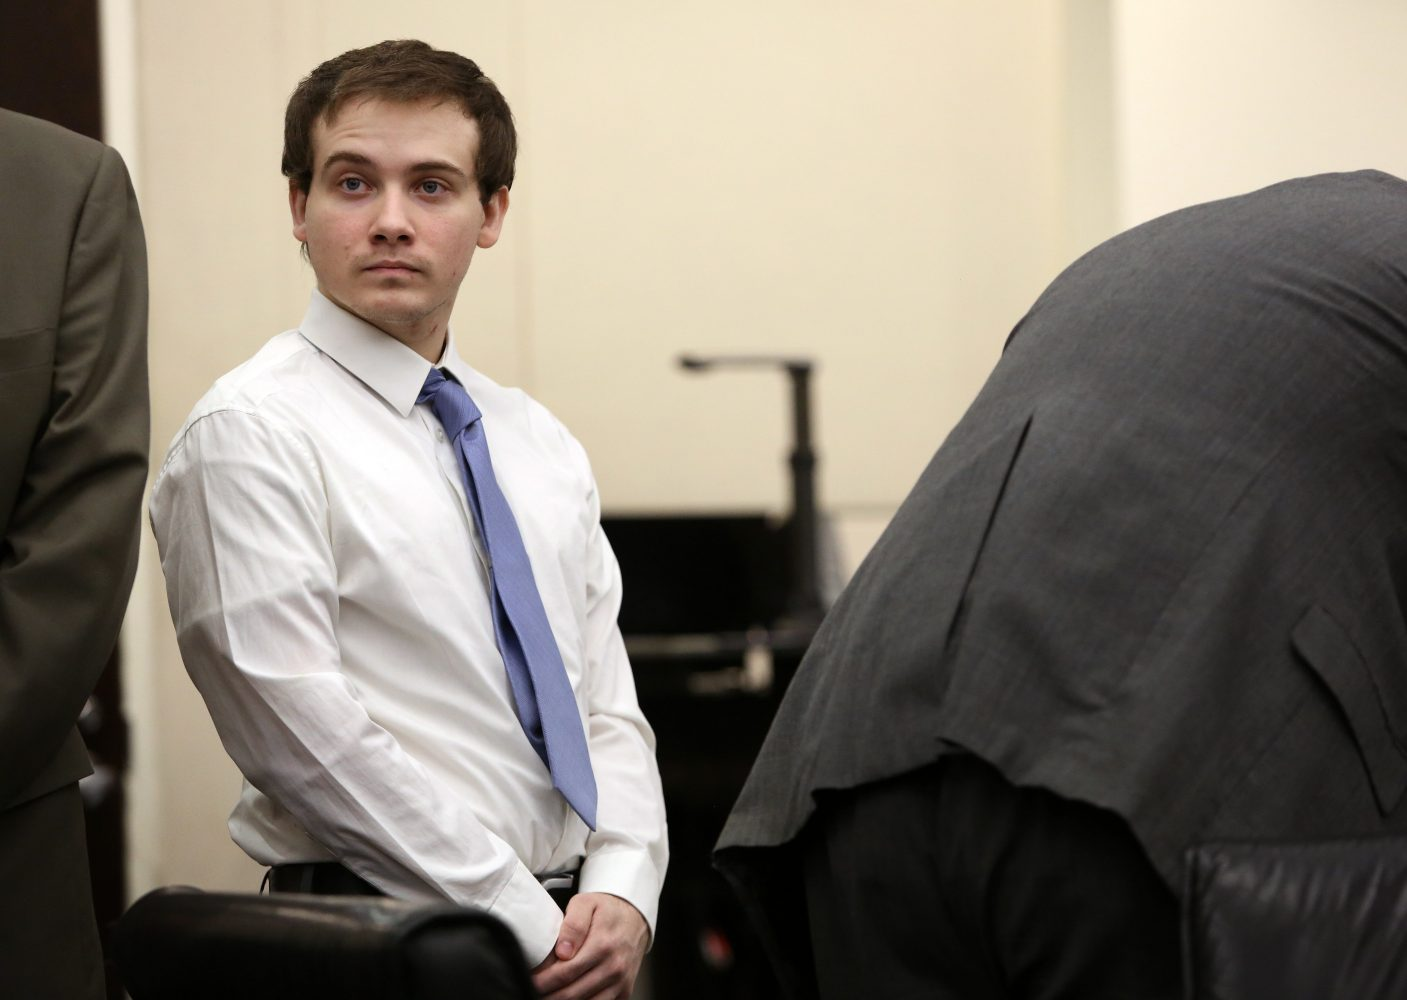 Defendant Pedro Bravo attends jury selection in courtroom 1B of the Alachua County Criminal Justice Center Monday, August 4, 2014.  Bravo is on trial for the murder of University of Florida student Christian Aguilar.  (Doug Finger/The Gainesville Sun/Pool)